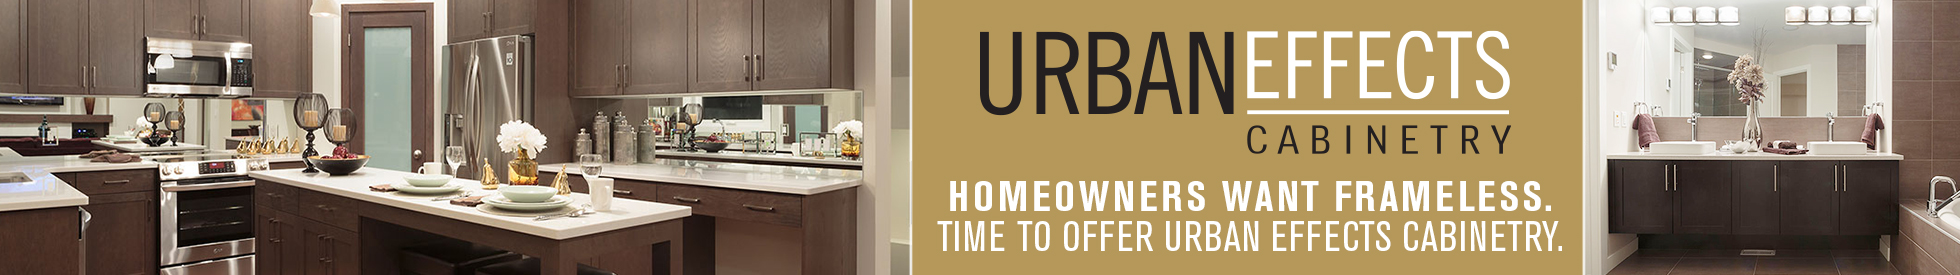 become an urban effects cabinetry dealer